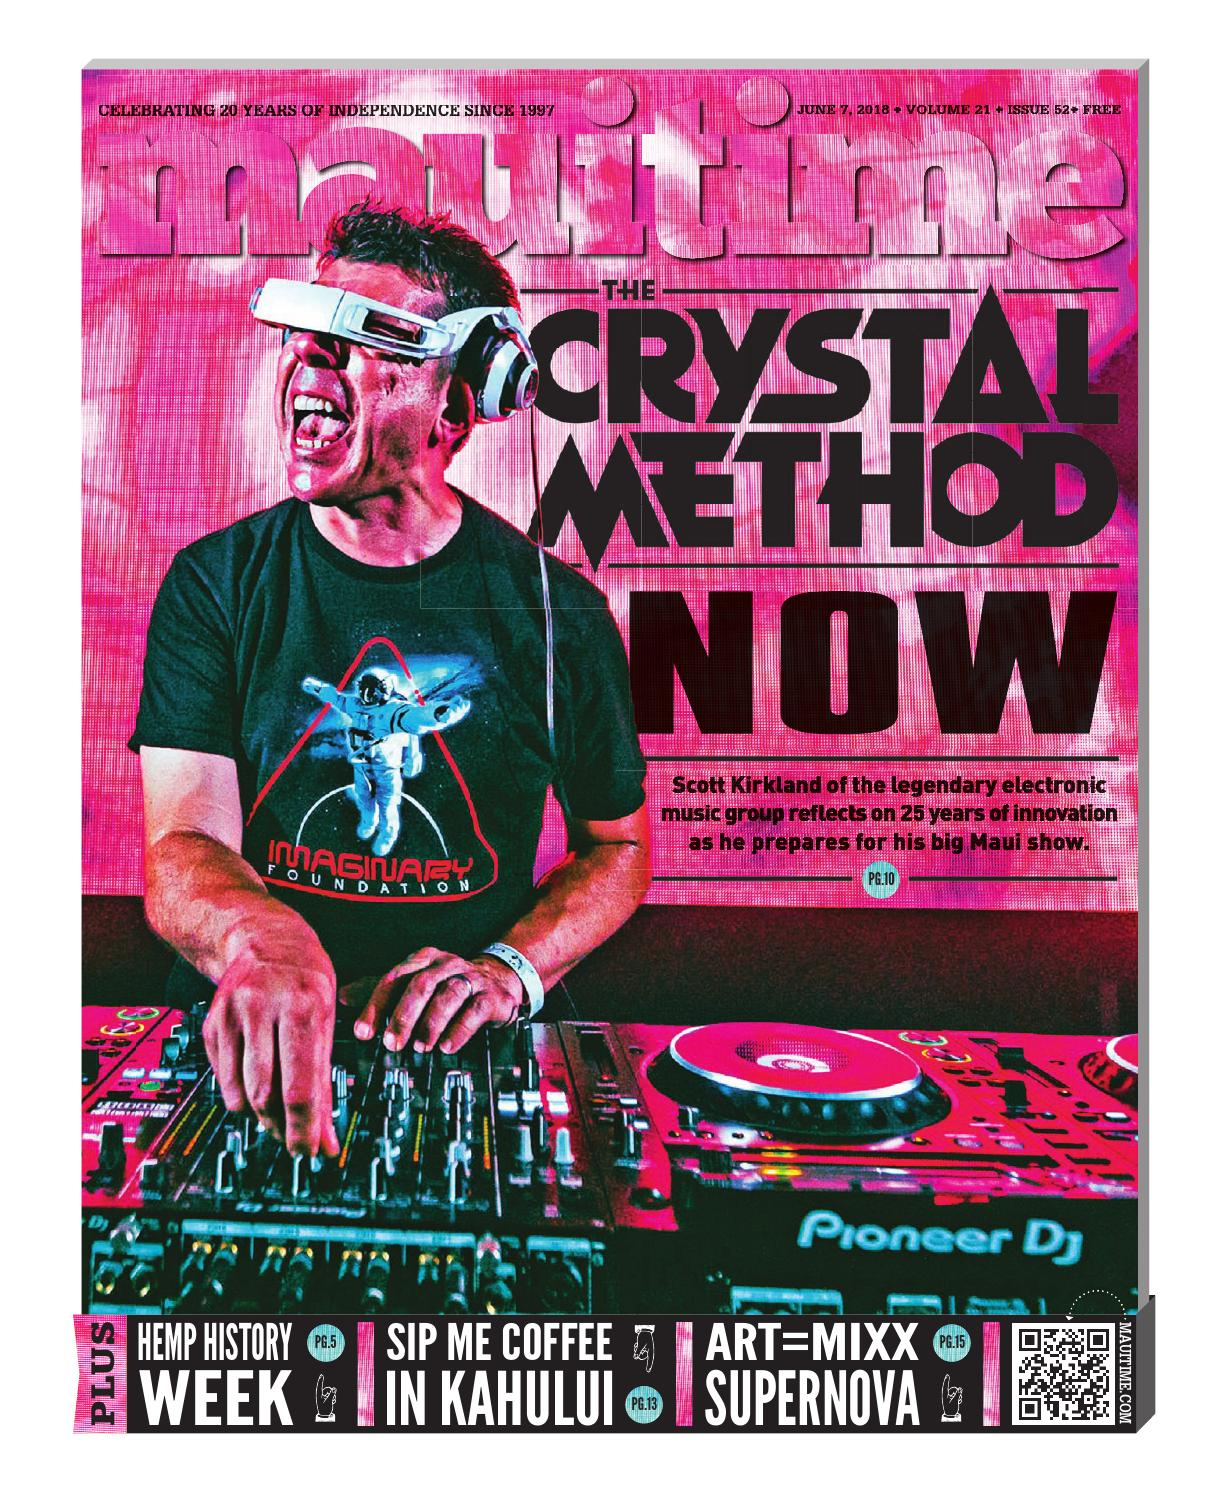 dd401ad063 21.52 The Crystal Method Now Scott Kirkland June 07, 2018, Volume 21, Issue  52, MauiTime by Maui Time - issuu